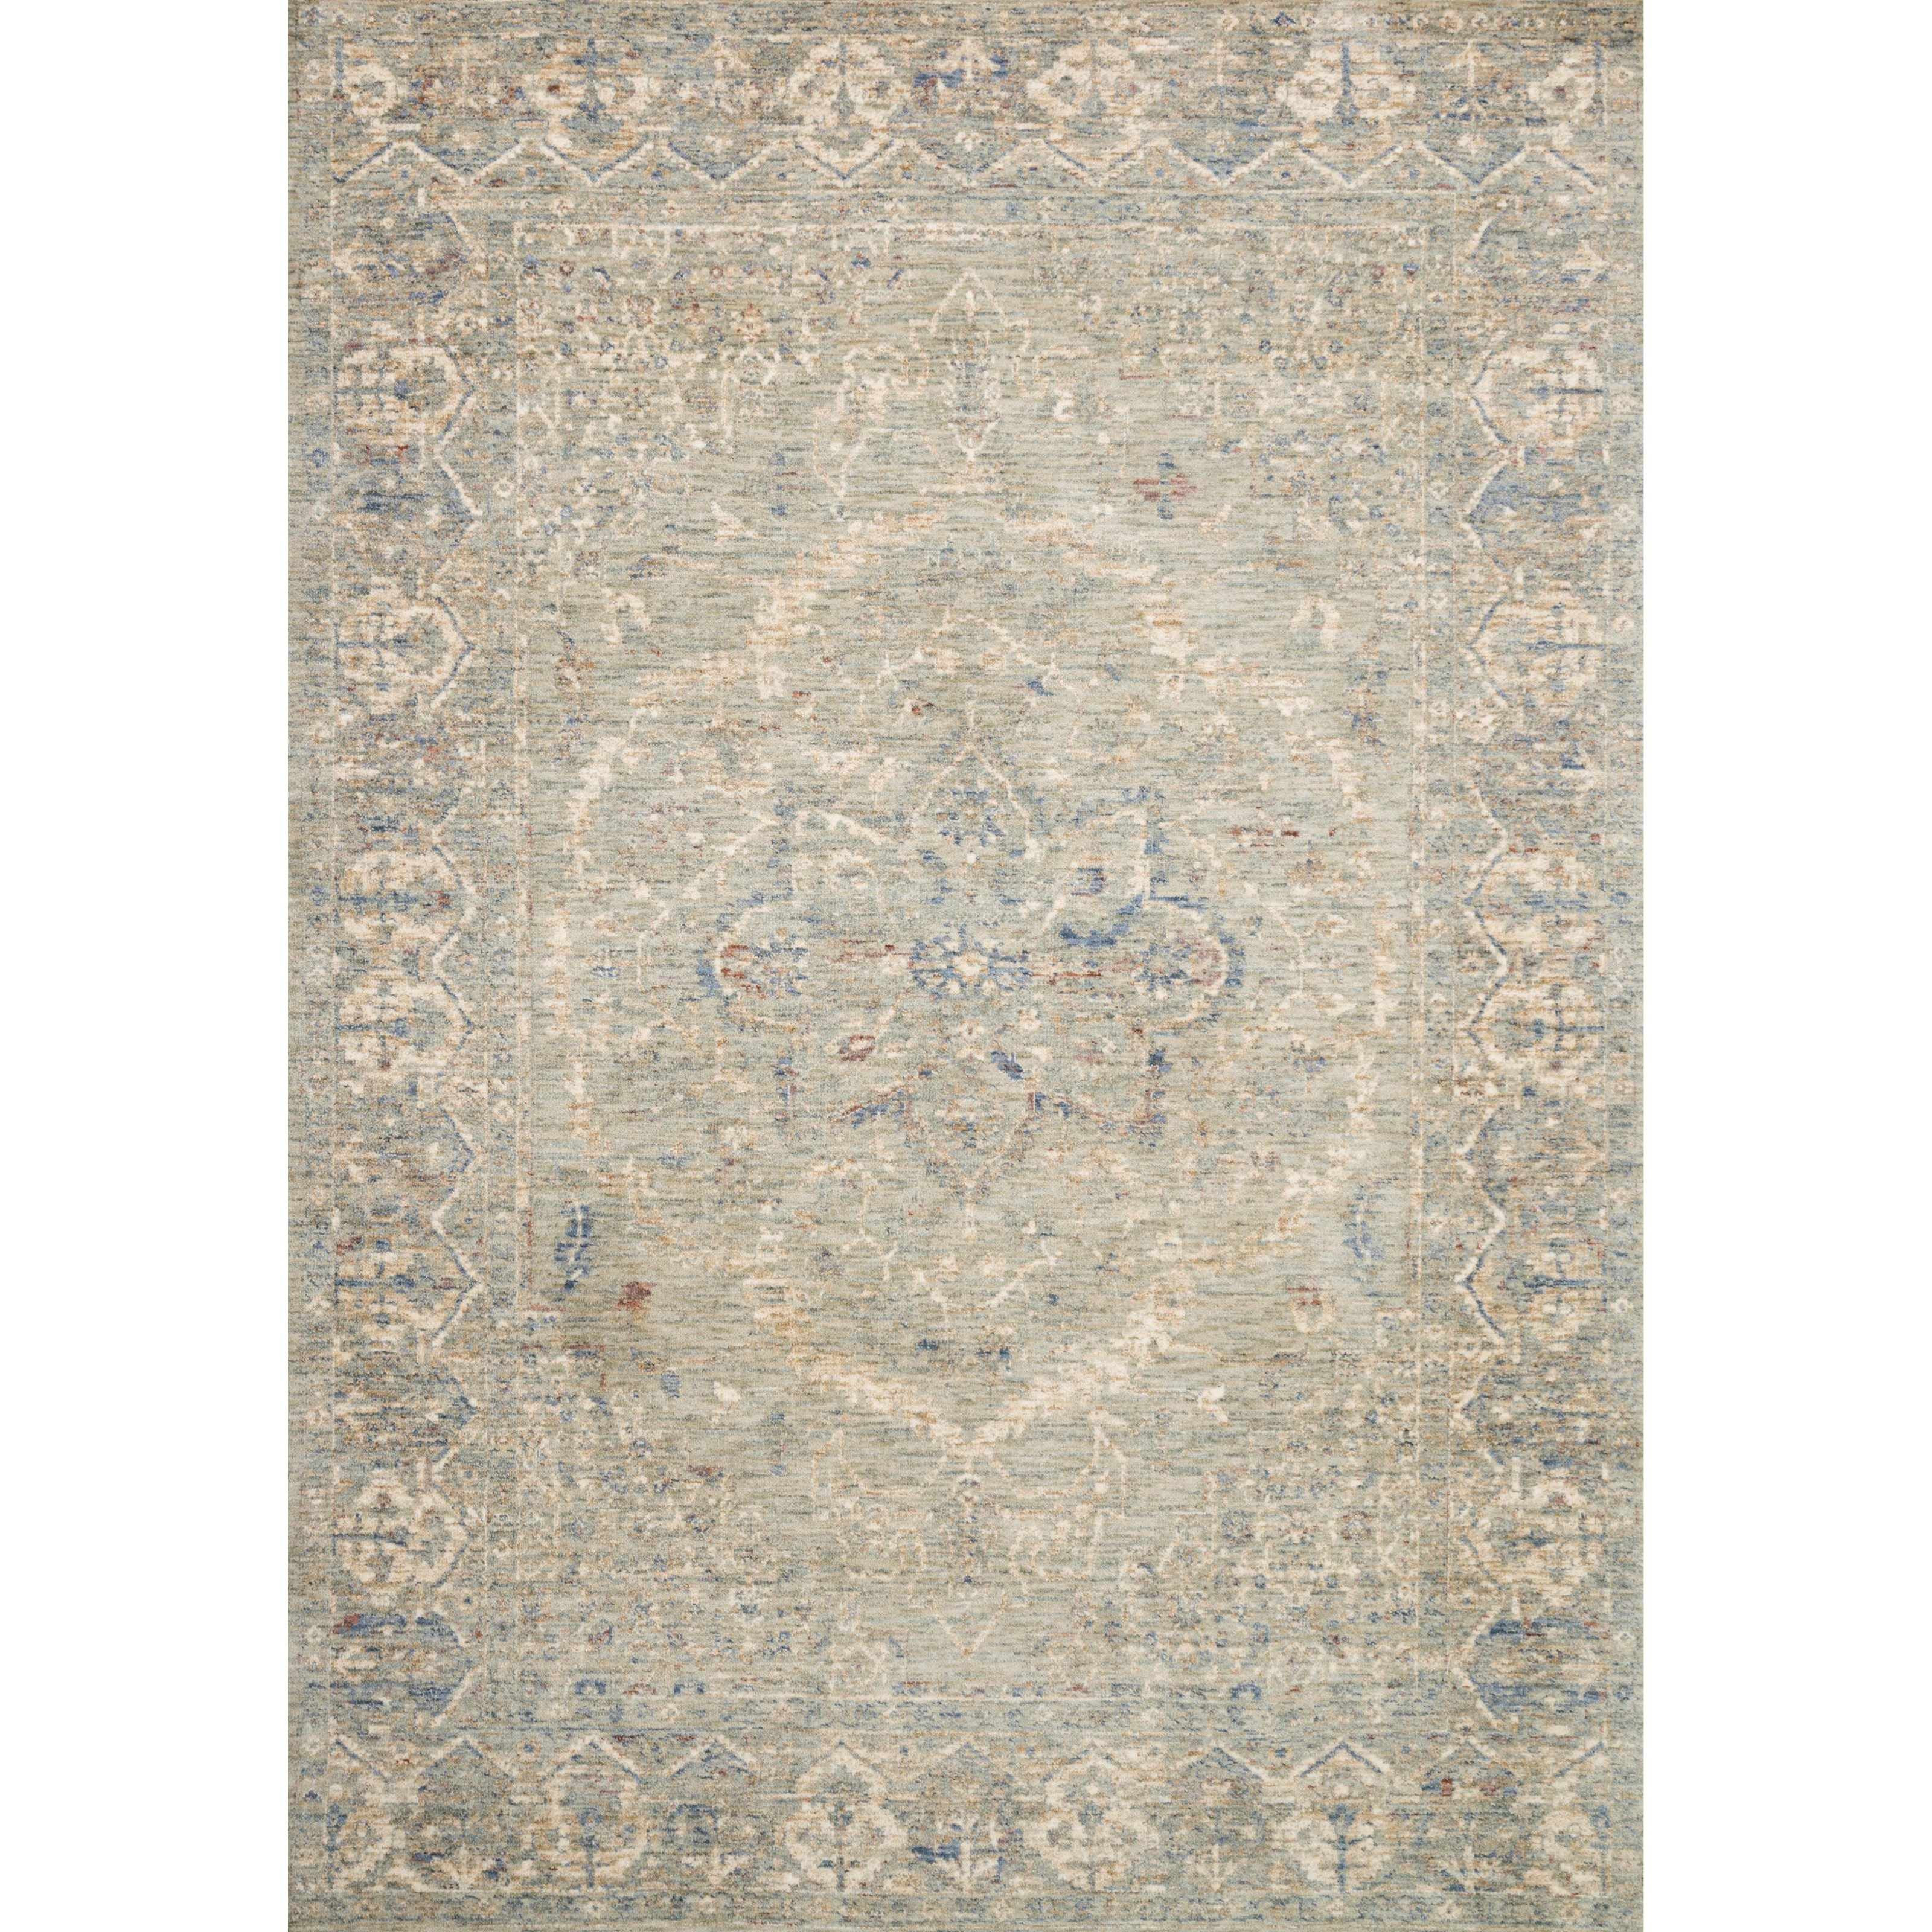 """Revere 11'6"""" x 15'6"""" Mist Rug by Loloi Rugs at Virginia Furniture Market"""